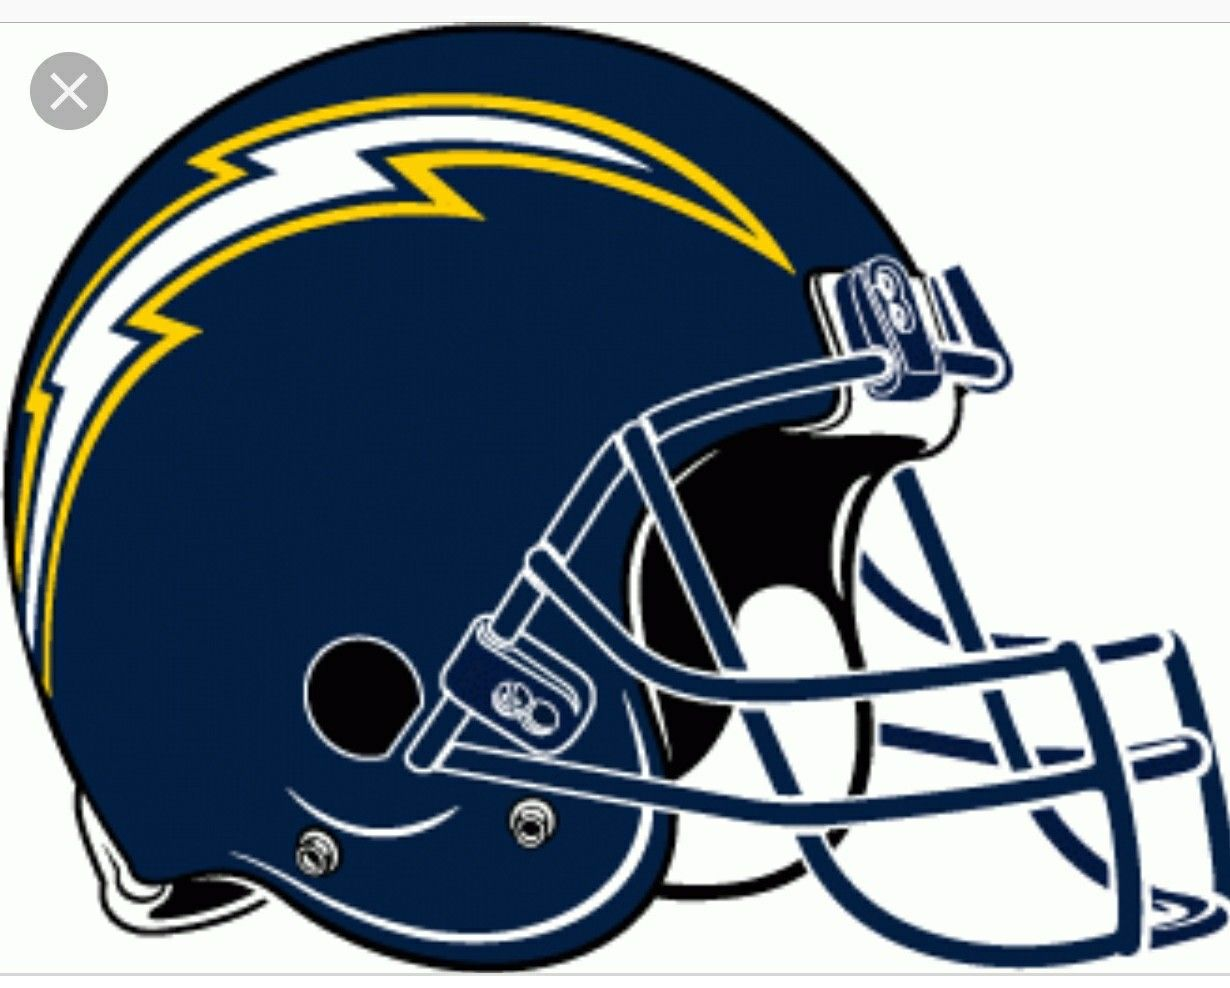 Chargers Helmet Chargers Football San Diego Chargers Logo San Diego Chargers